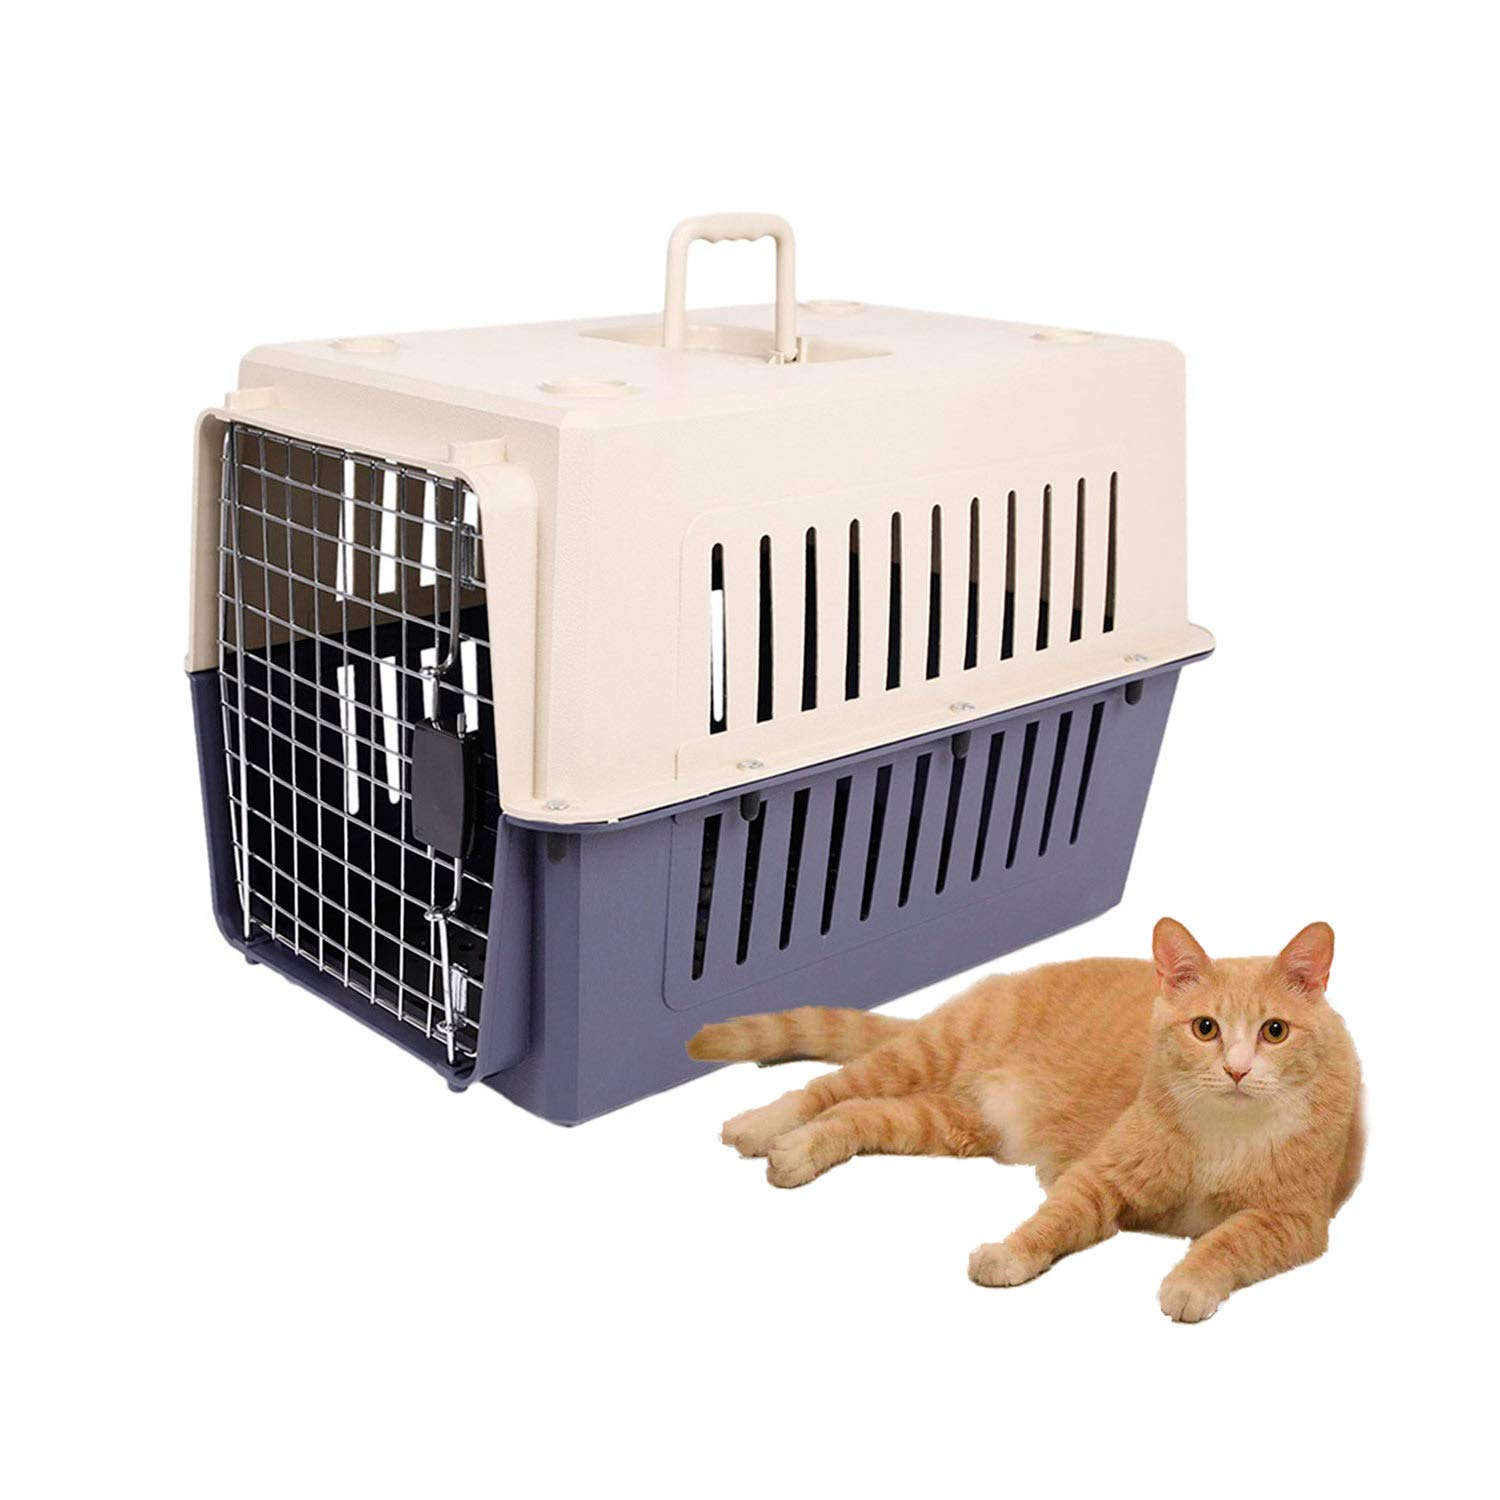 Dporticus Portable Pet Airline Box,Outdoor Portable Cage Carrier Suitable for Dogs Cats Rabbits Hamsters etc,Three Size by Dporticus